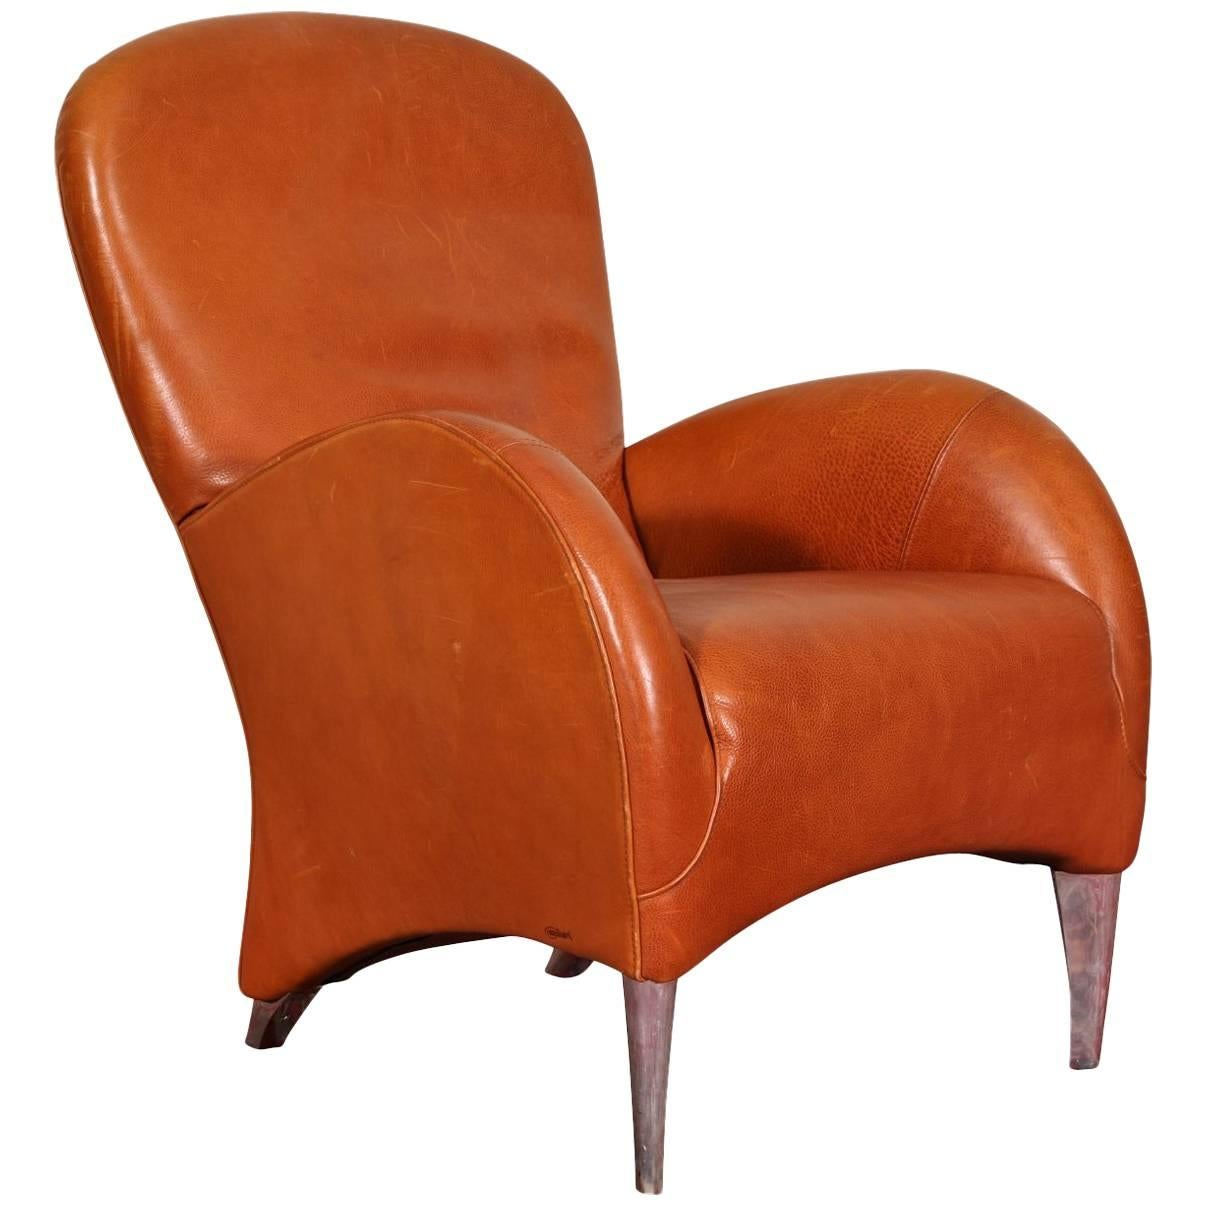 Genial Vintage Molinari Tobacco Leather Armchair For Sale